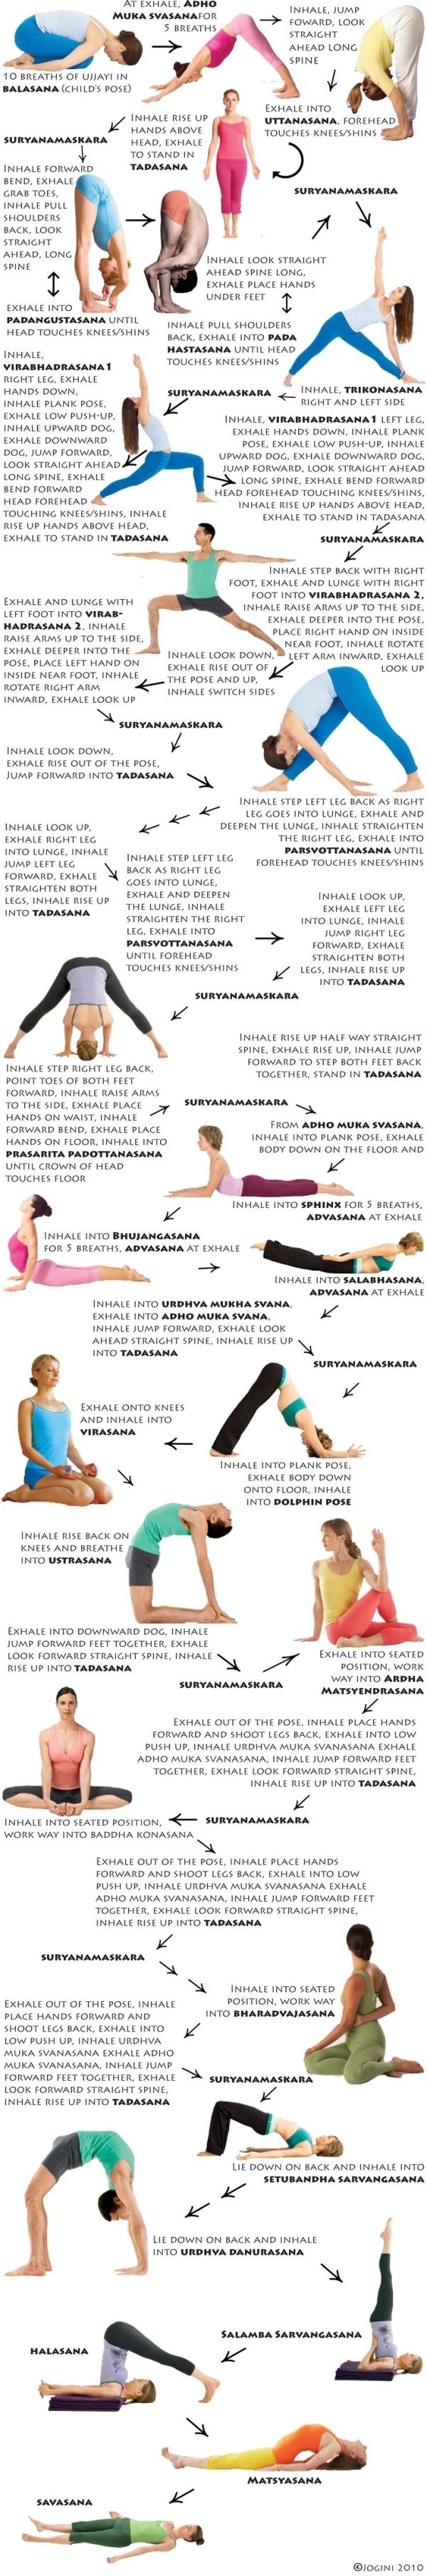 Yoga flow: a great morning or post work sequence by AislingH